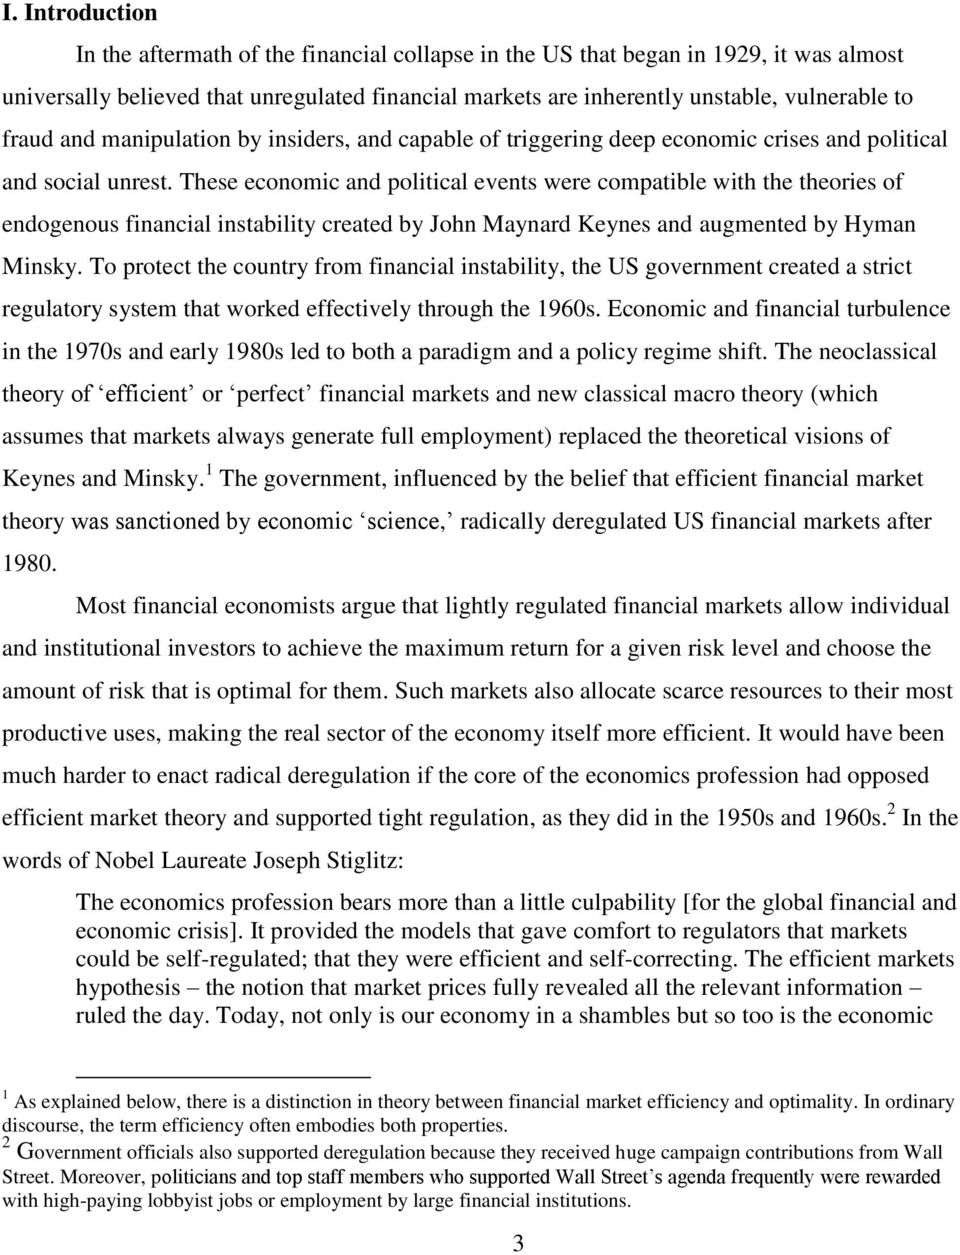 These economic and political events were compatible with the theories of endogenous financial instability created by John Maynard Keynes and augmented by Hyman Minsky.